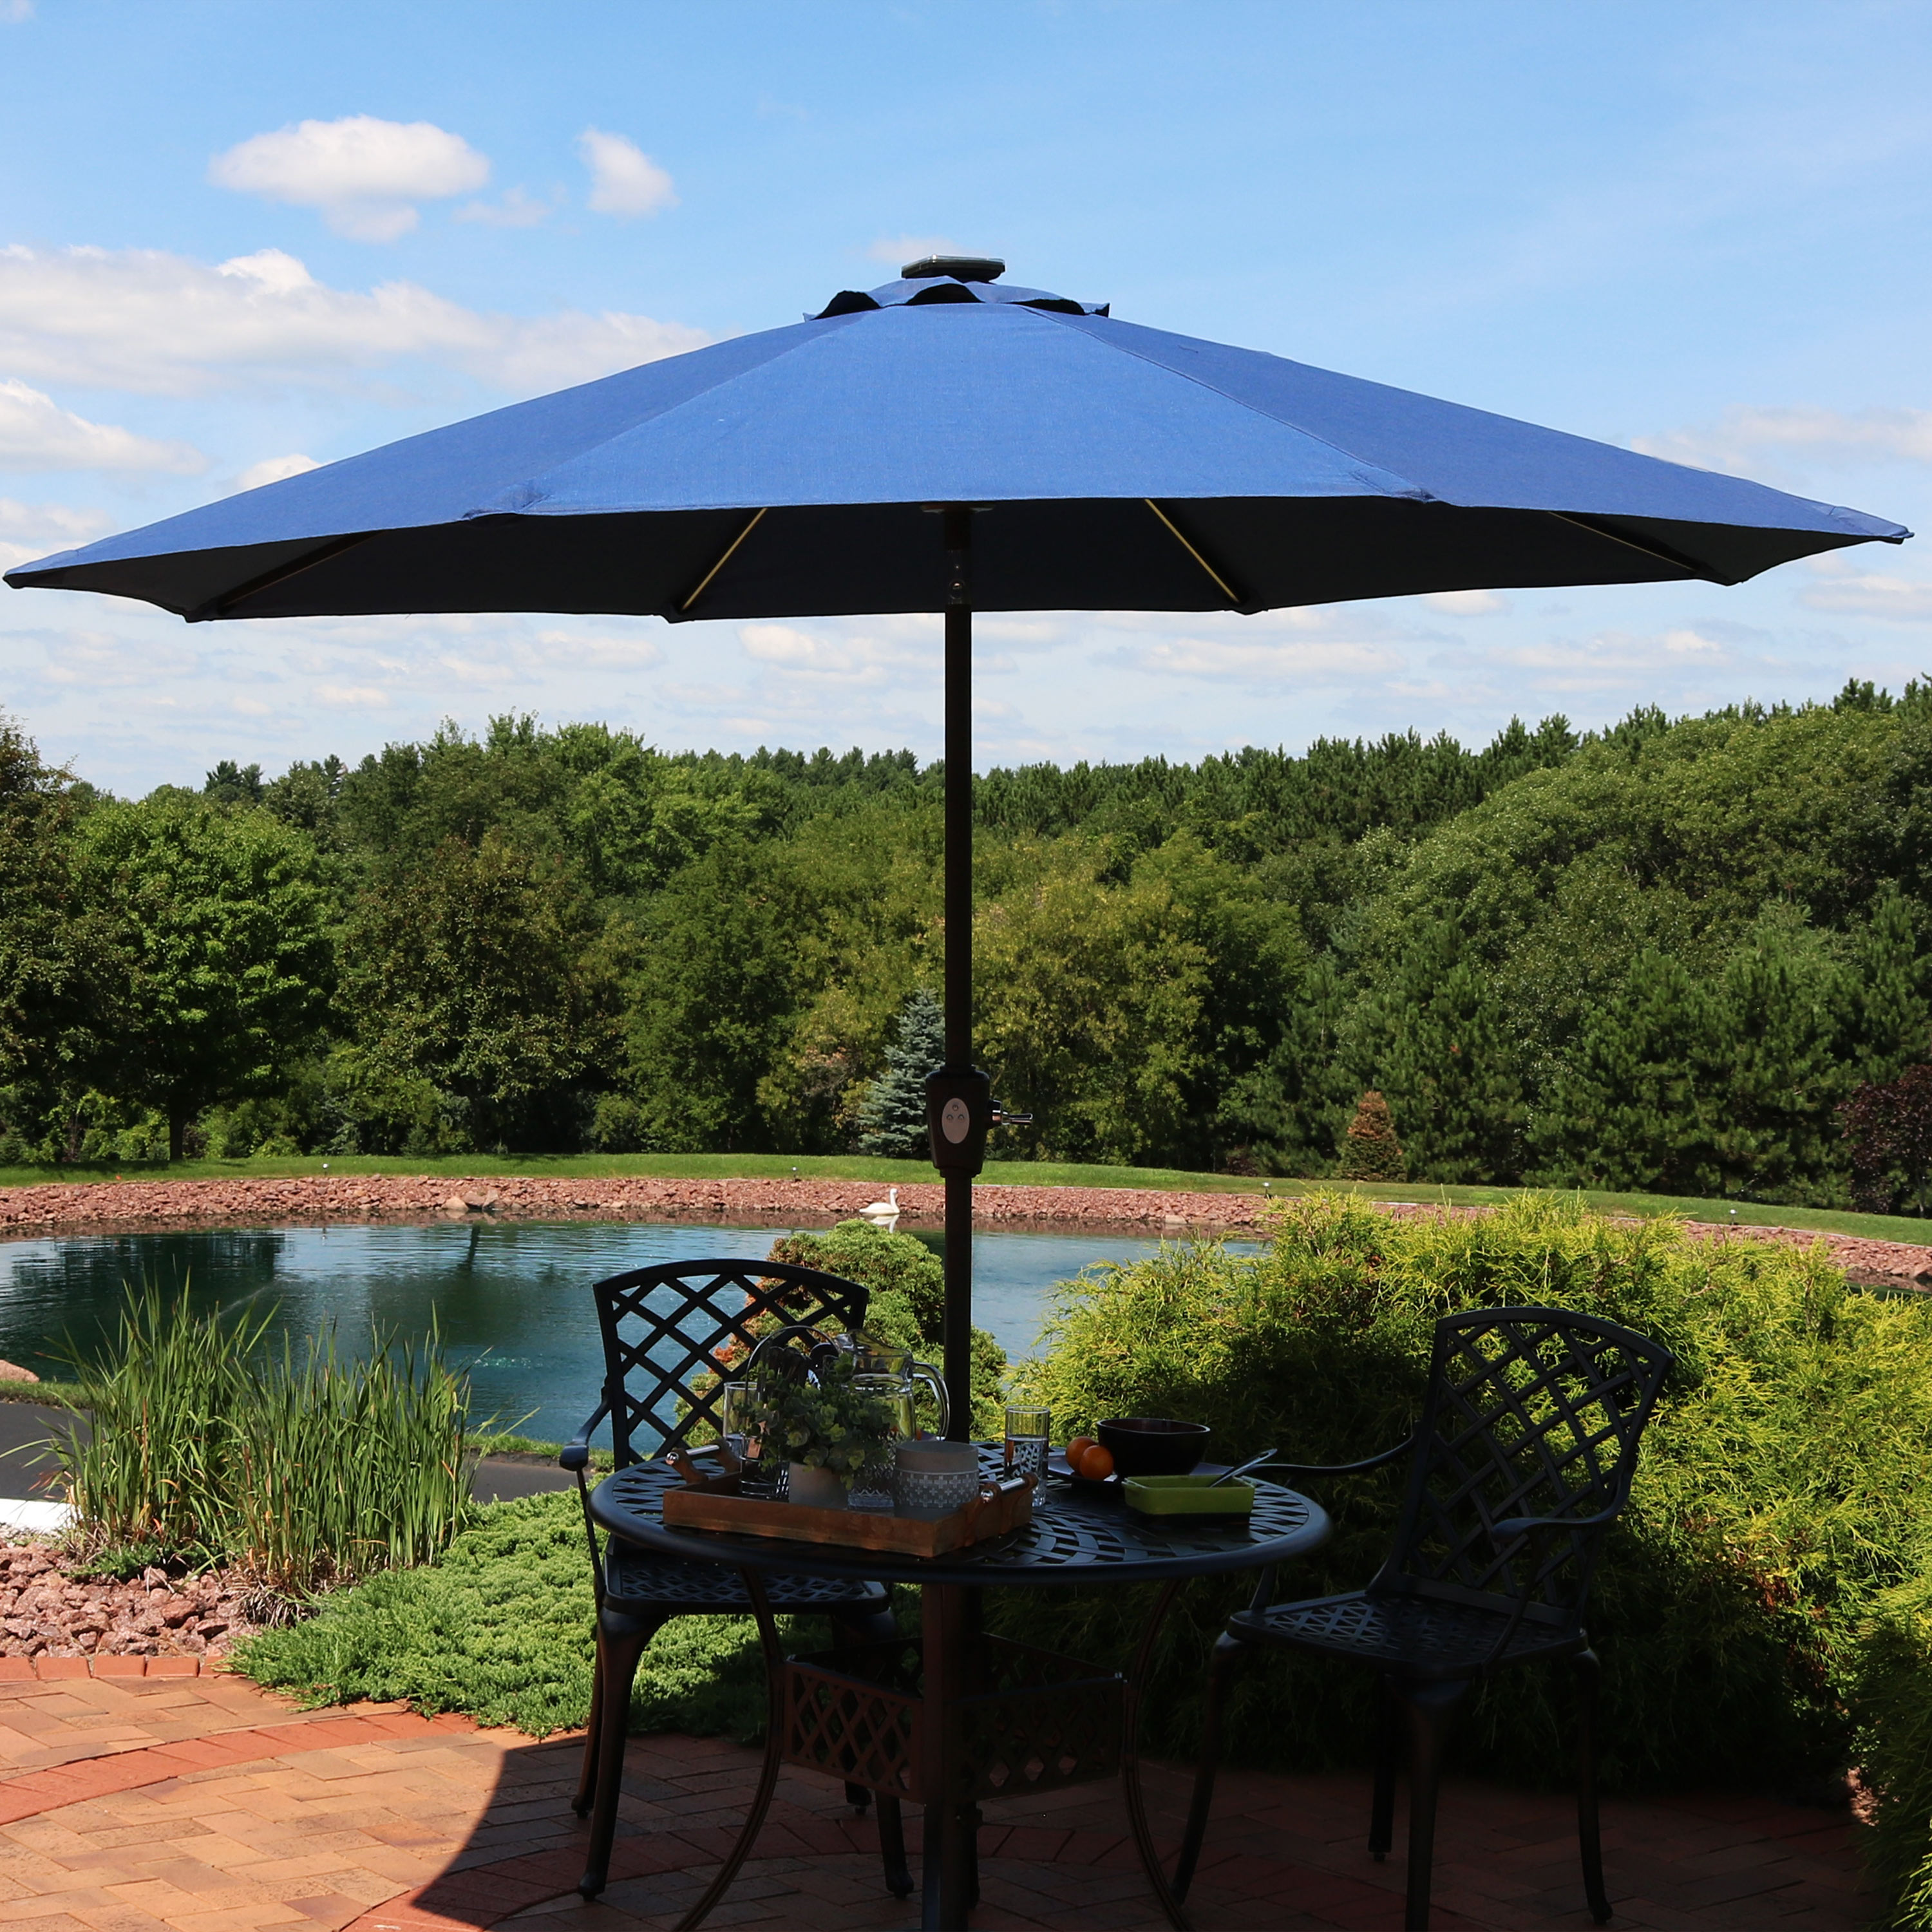 Sunnydaze 9-Foot Aluminum Spun-Poly Umbrella - Auto Tilt and Solar LED Lightbars